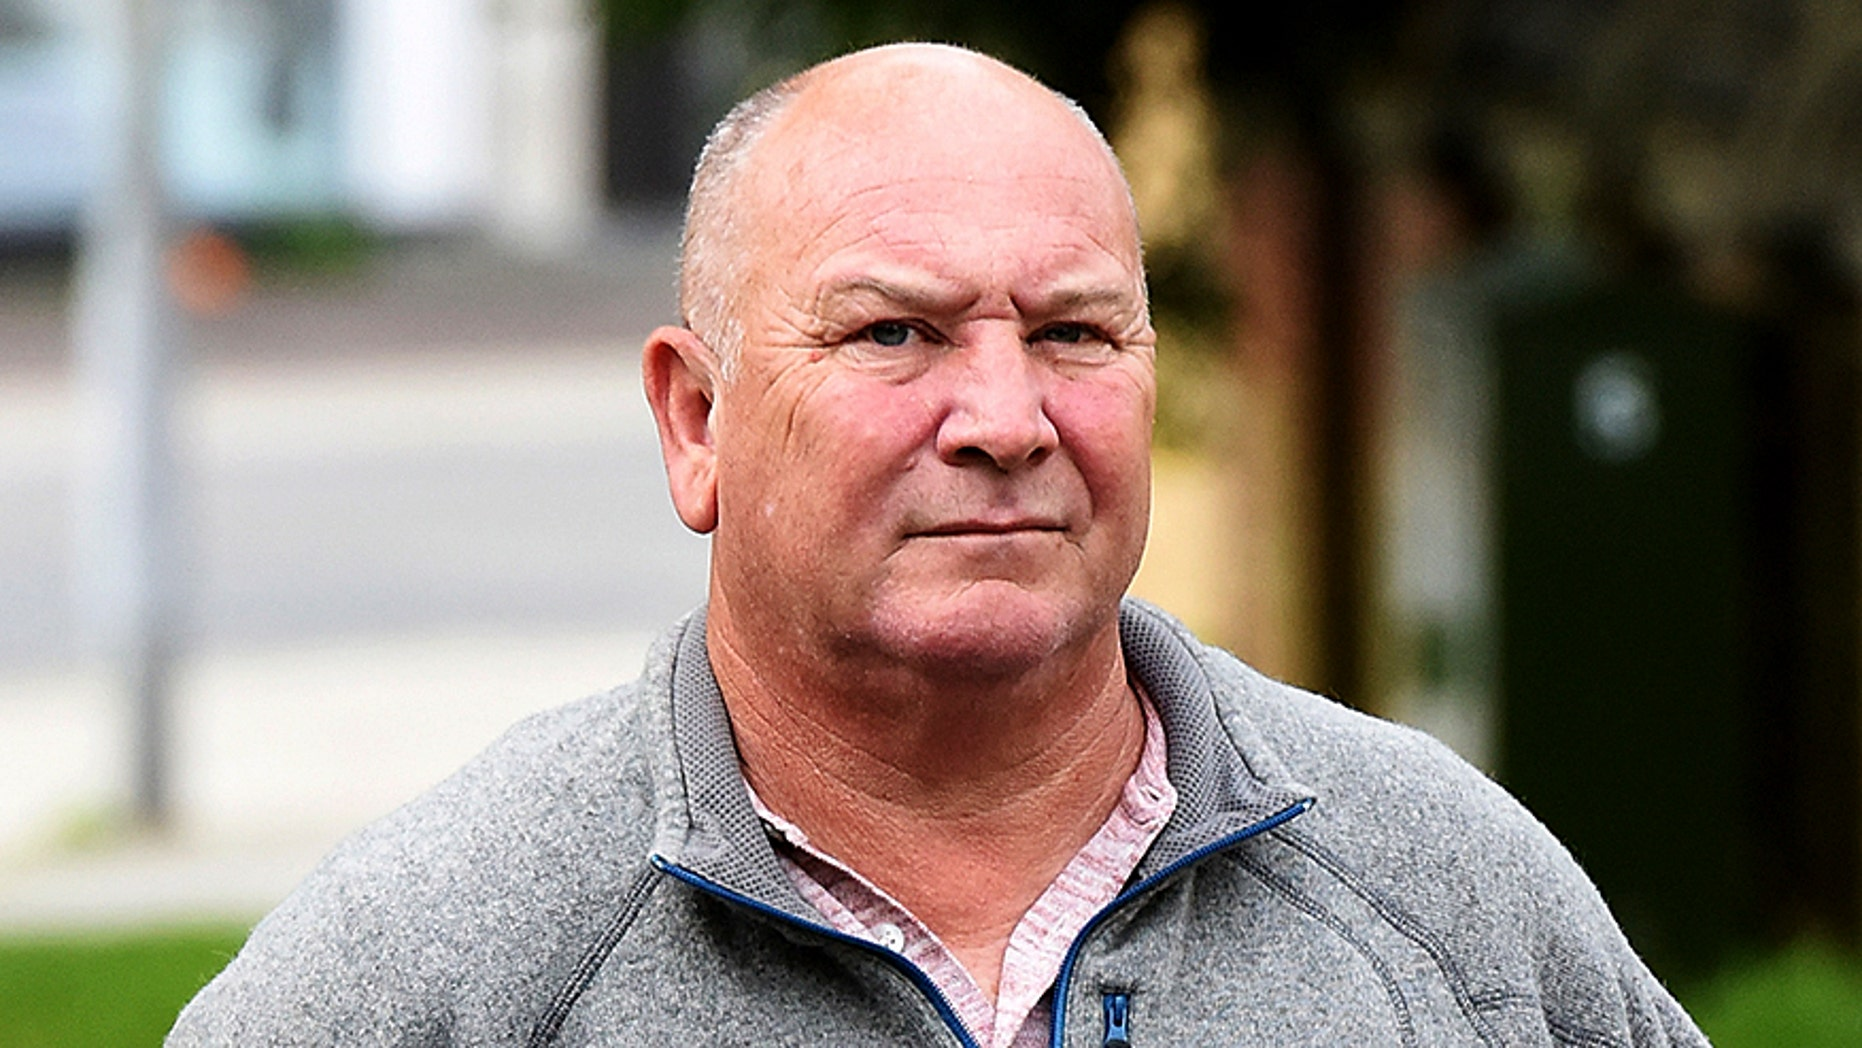 Neil Dymott, a businessman, launched a campaign of harassment against a lesbian couple living next door, a court in England heard this week.